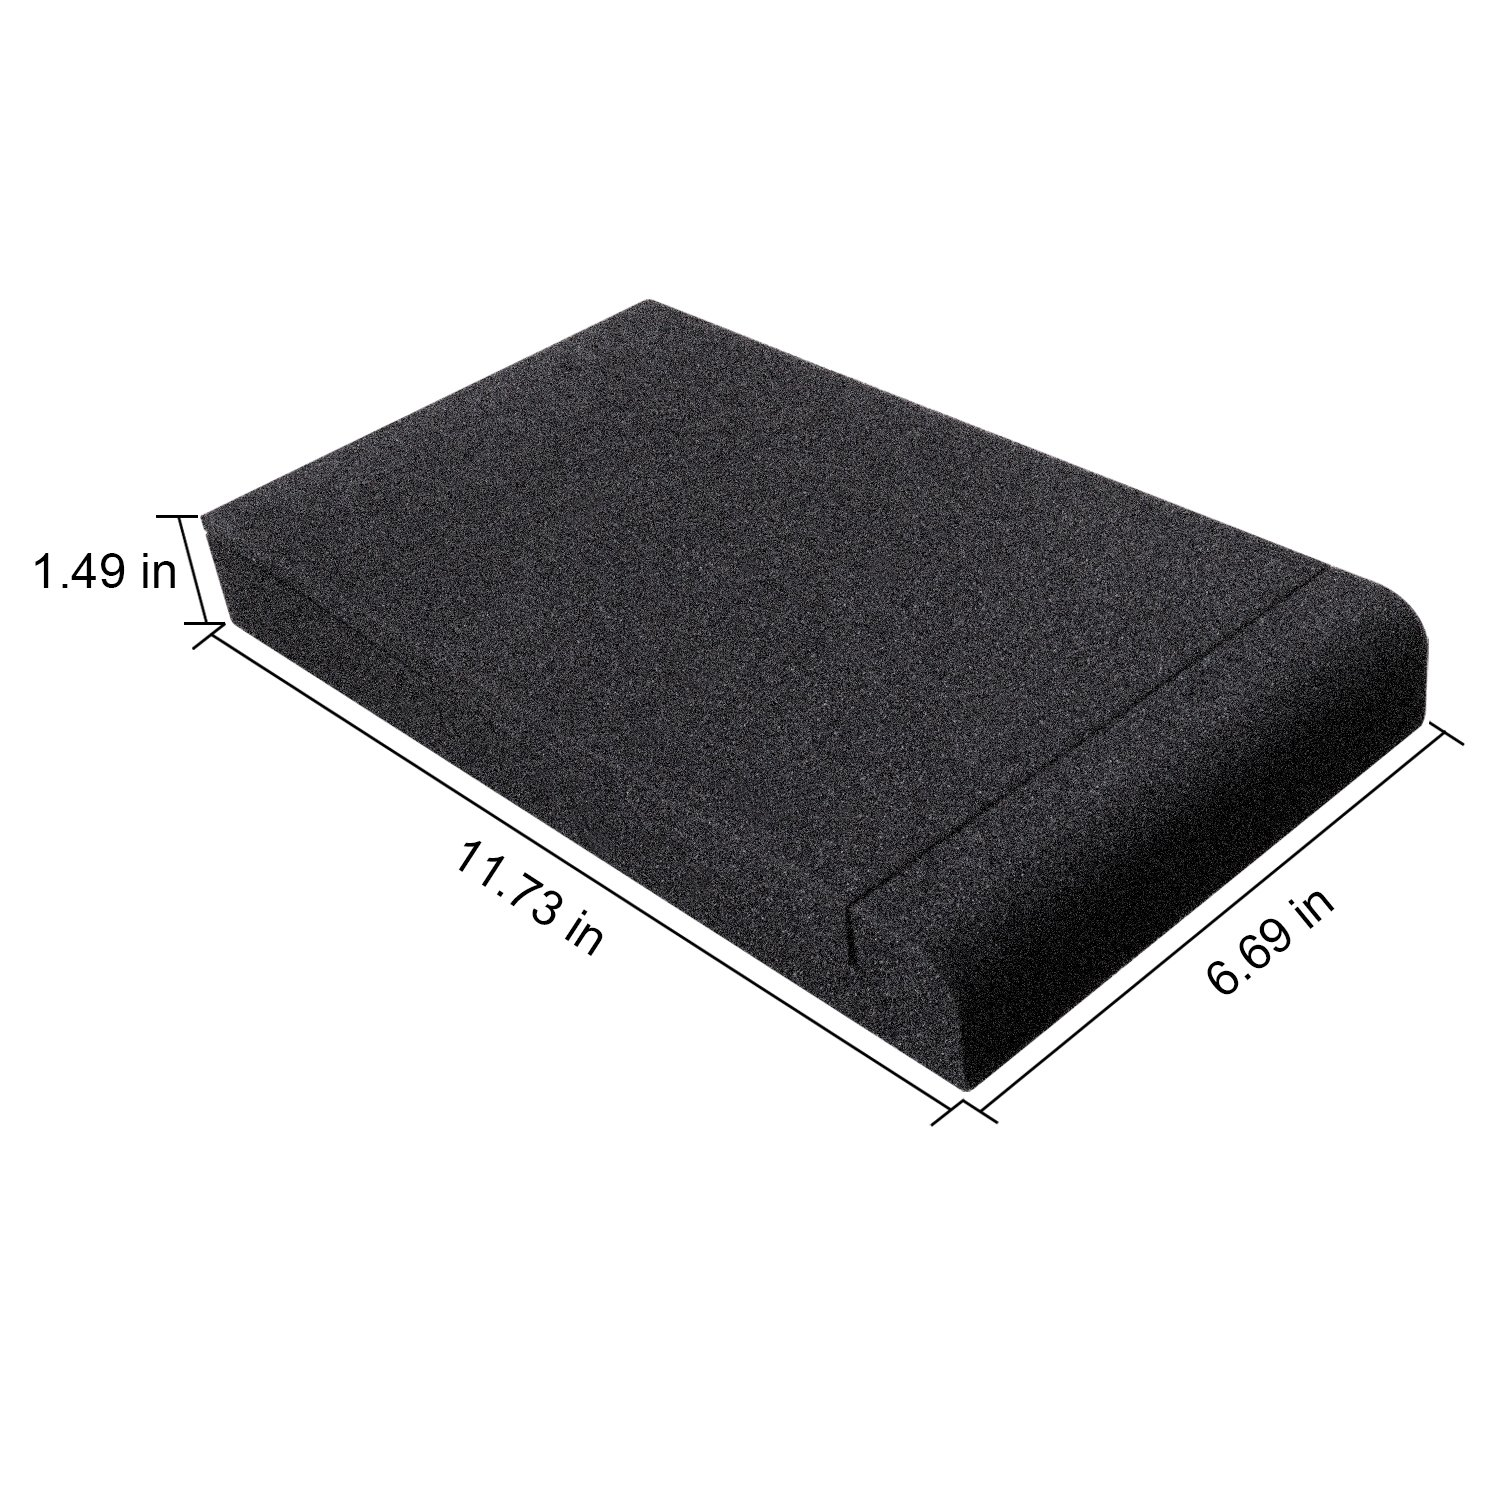 Studio Monitor Isolation Pads, Suitable for 5'' - 8'' inch for Speakers, High-Density Acoustic Foam for Significant Sound Improvement, Prevent Vibrations and Fits most Stands - 2 Pads by Shayson (Image #4)